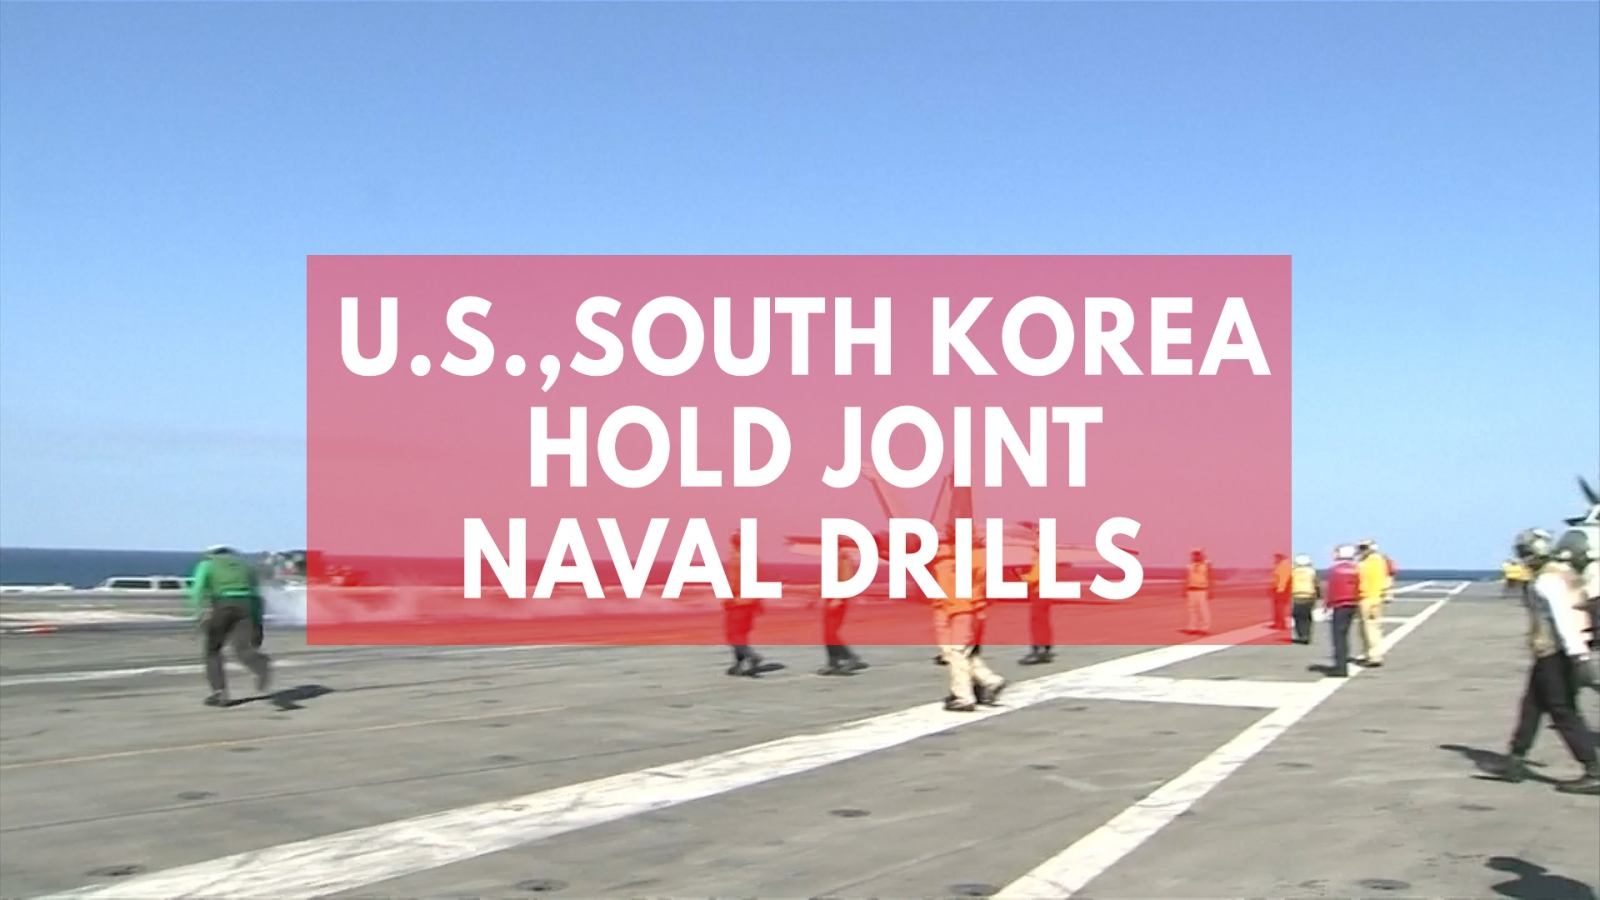 uss-ronald-reagan-takes-part-in-joint-naval-drills-with-south-korea